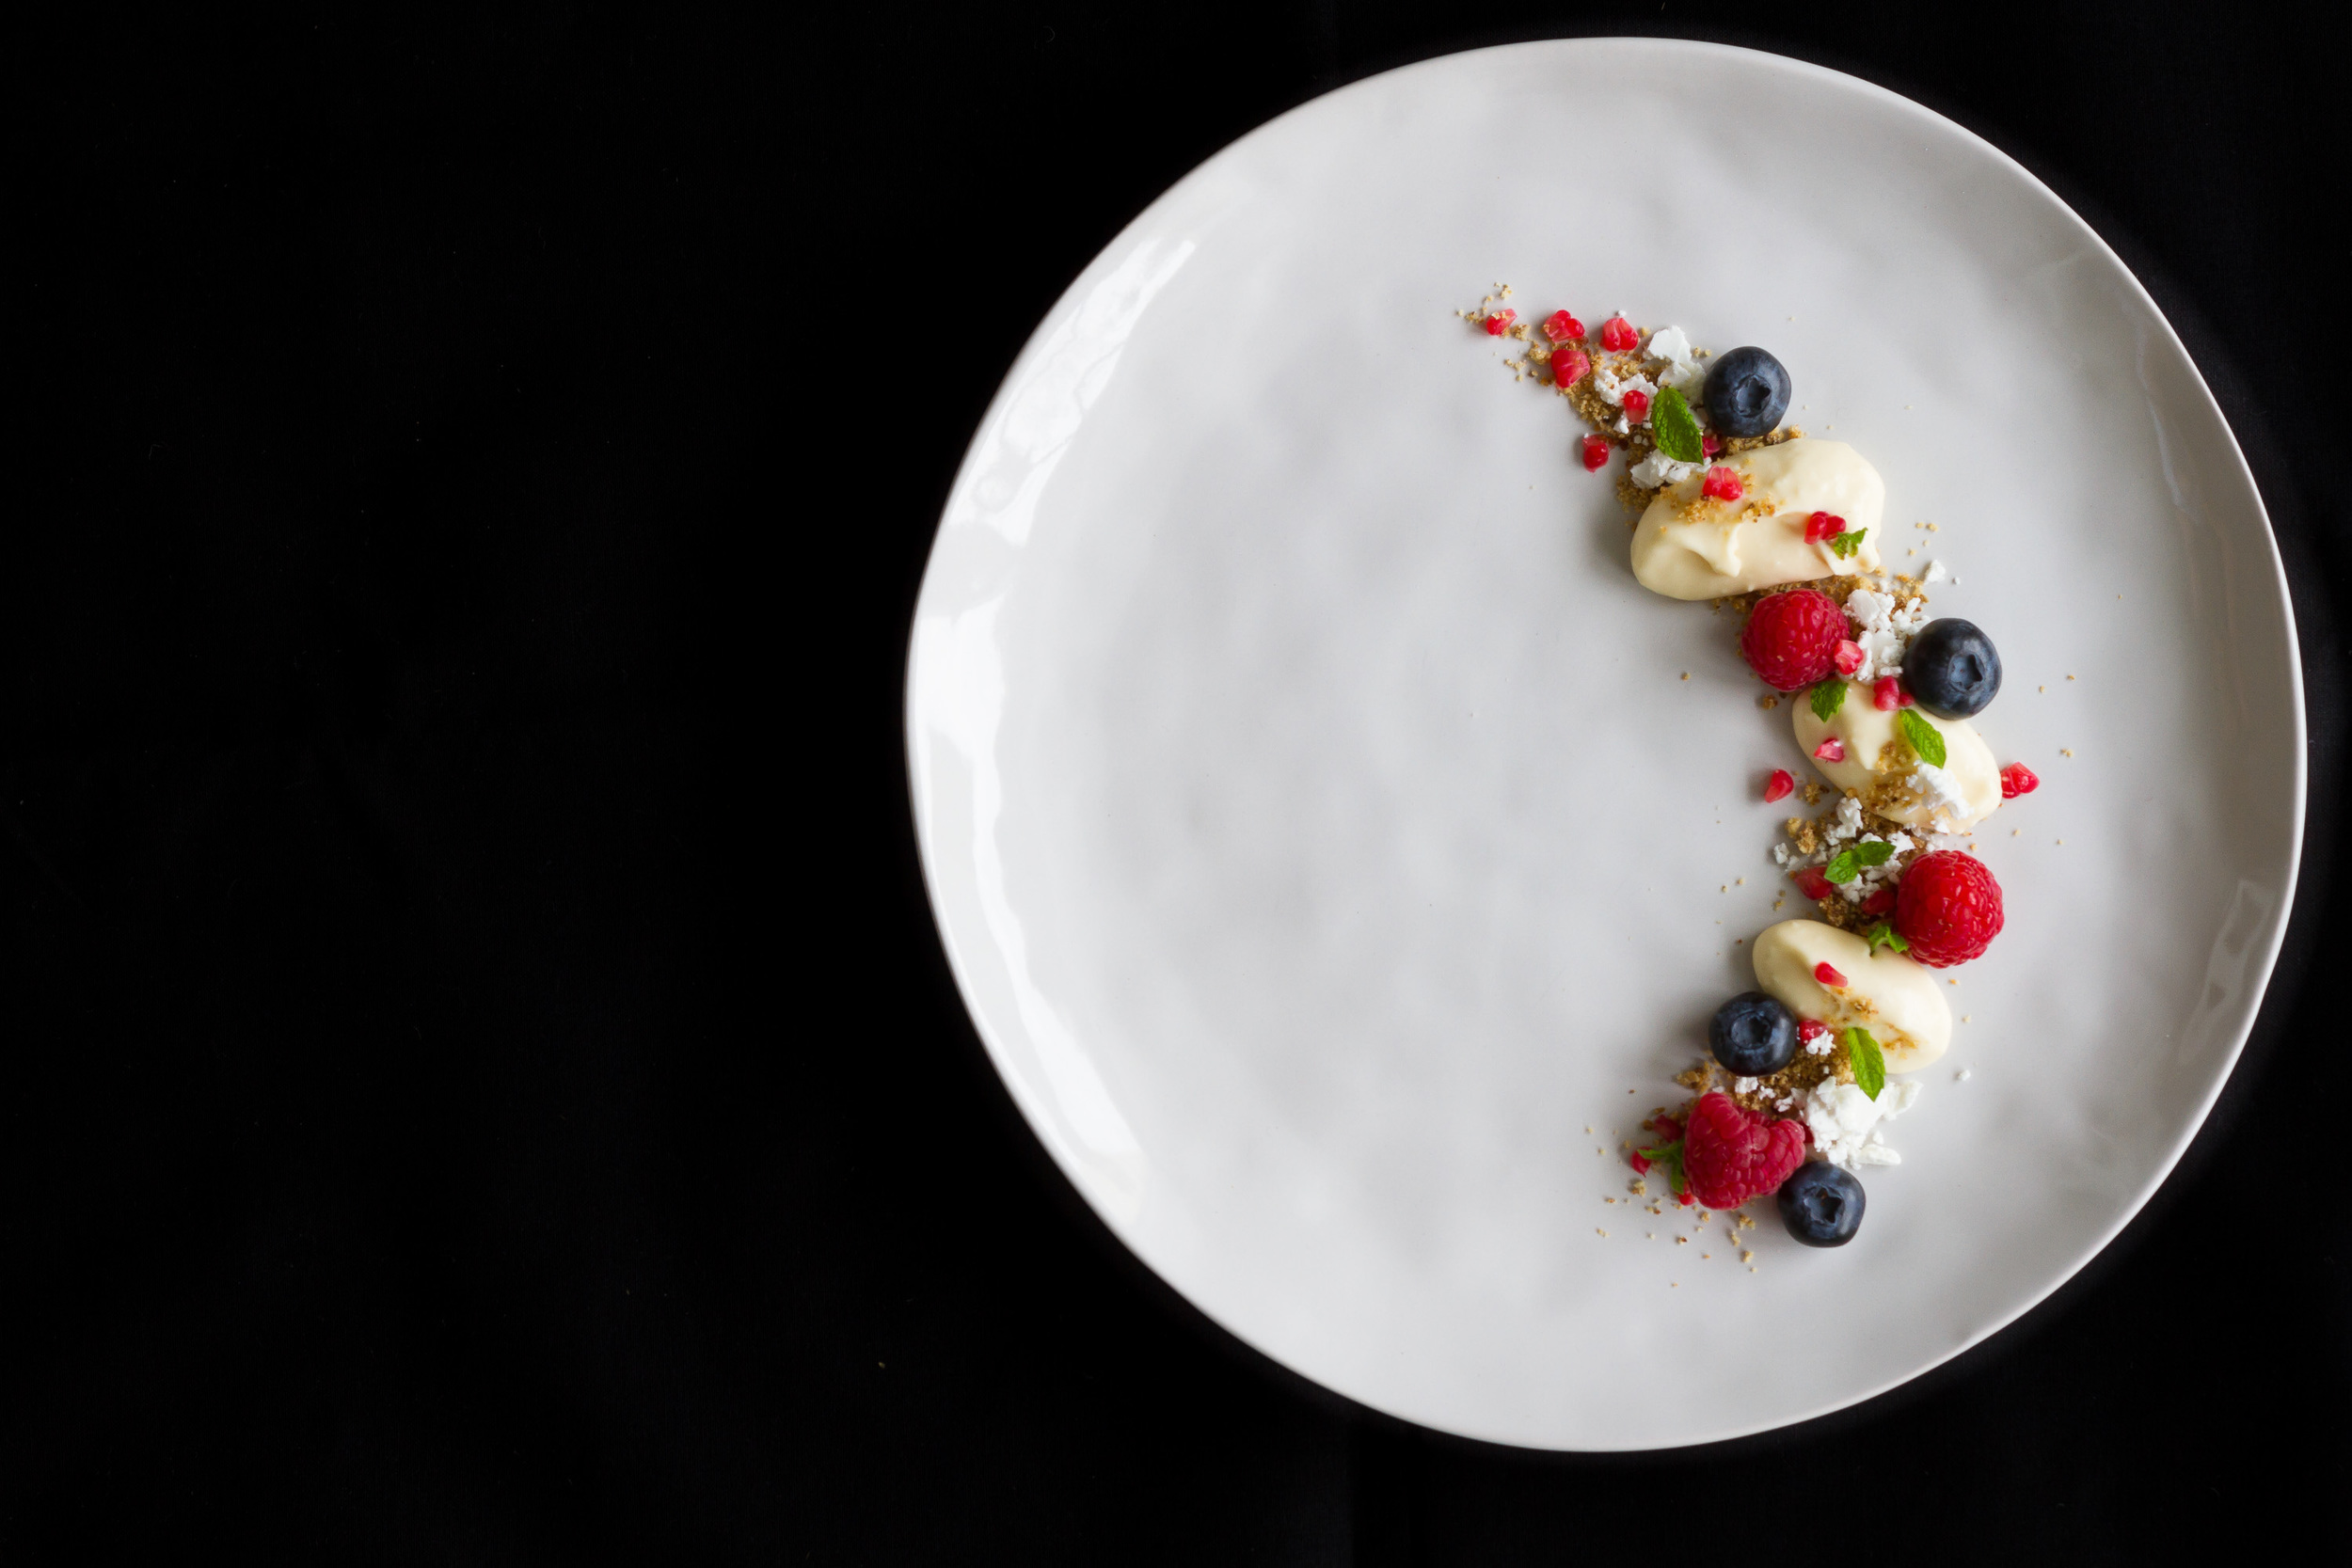 Honey mousse, fennel sand, fresh berries